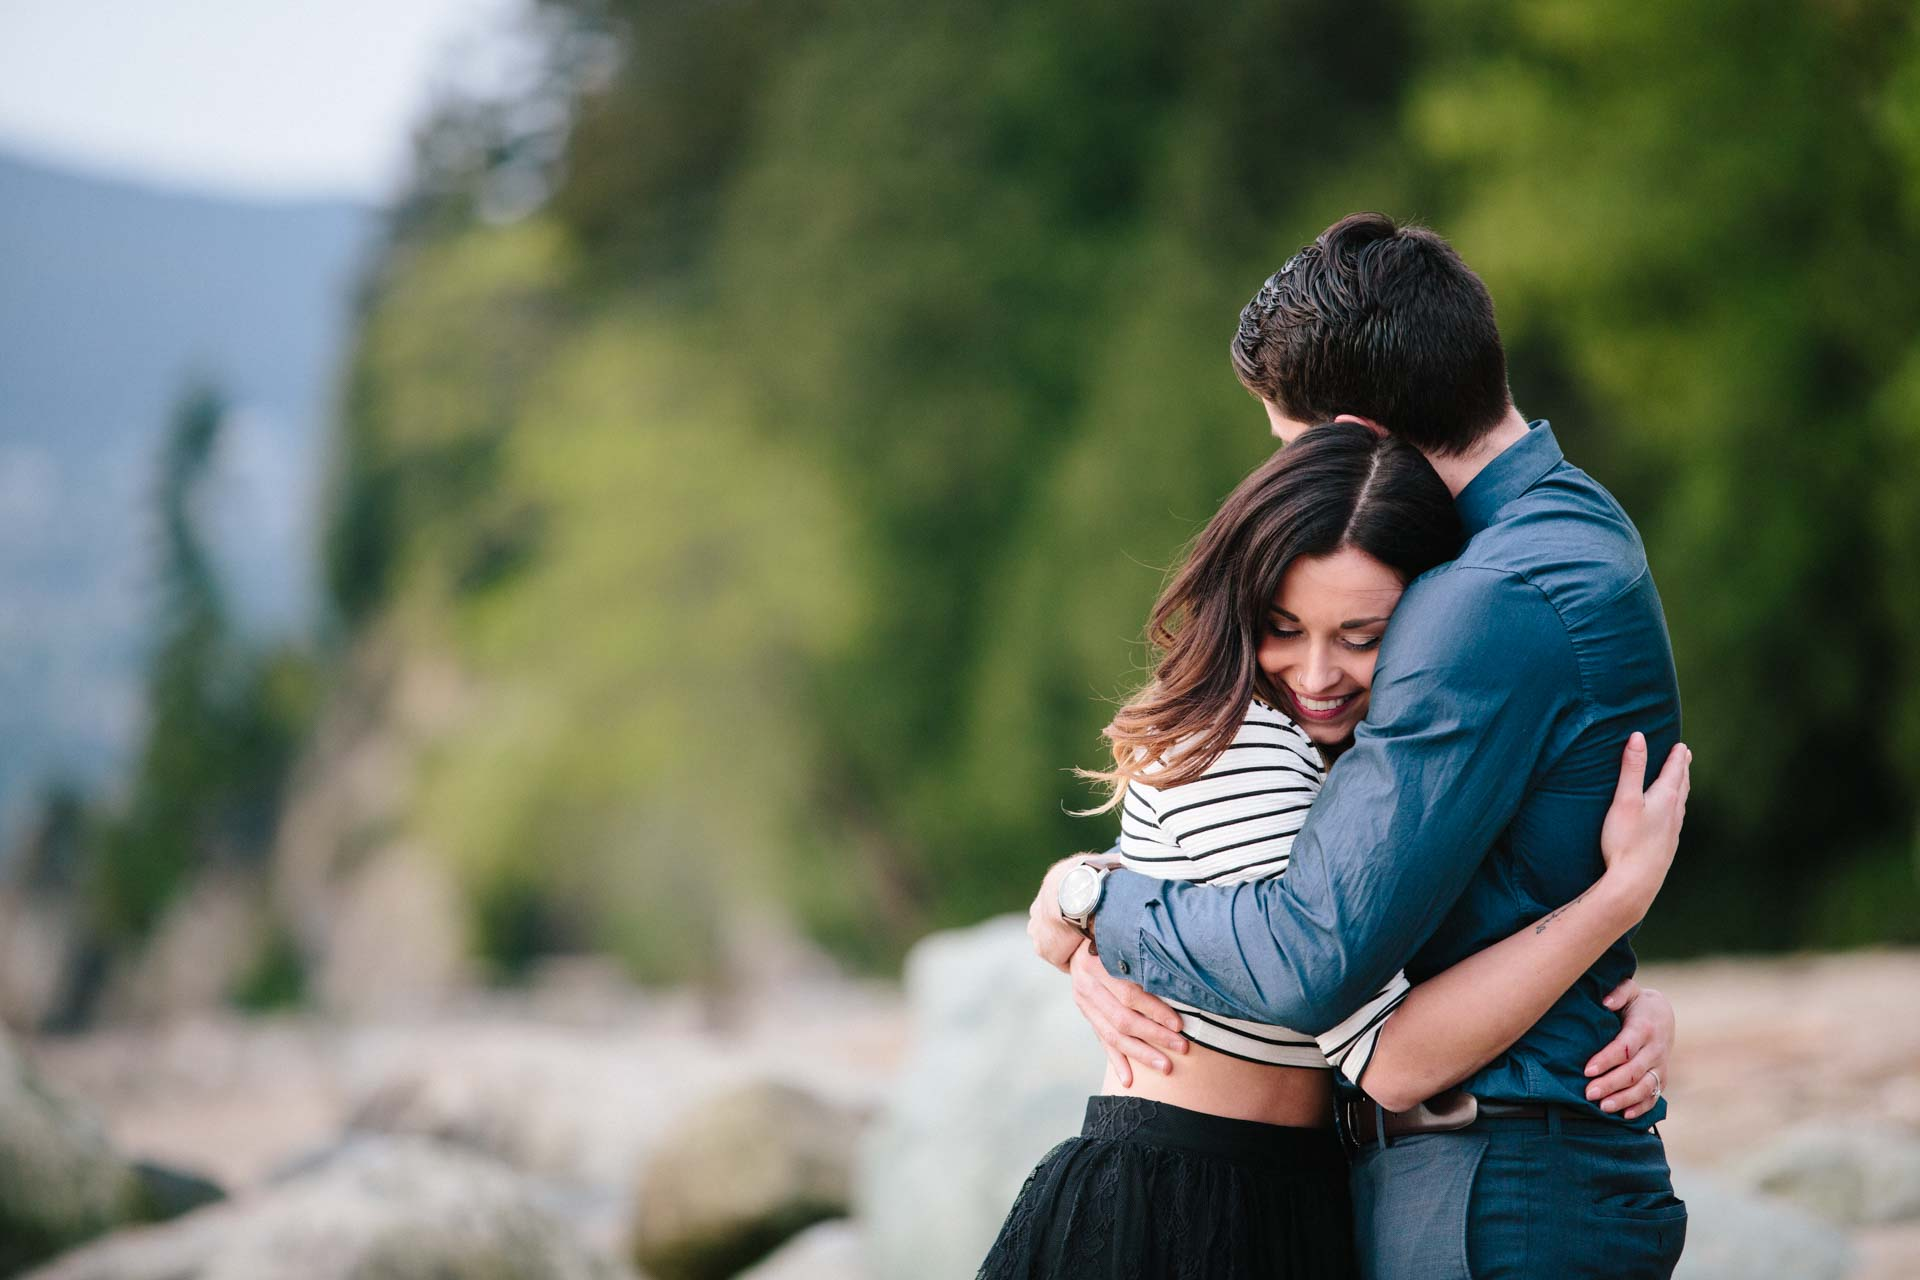 joel caitlin stanley park vancouver engagement photo